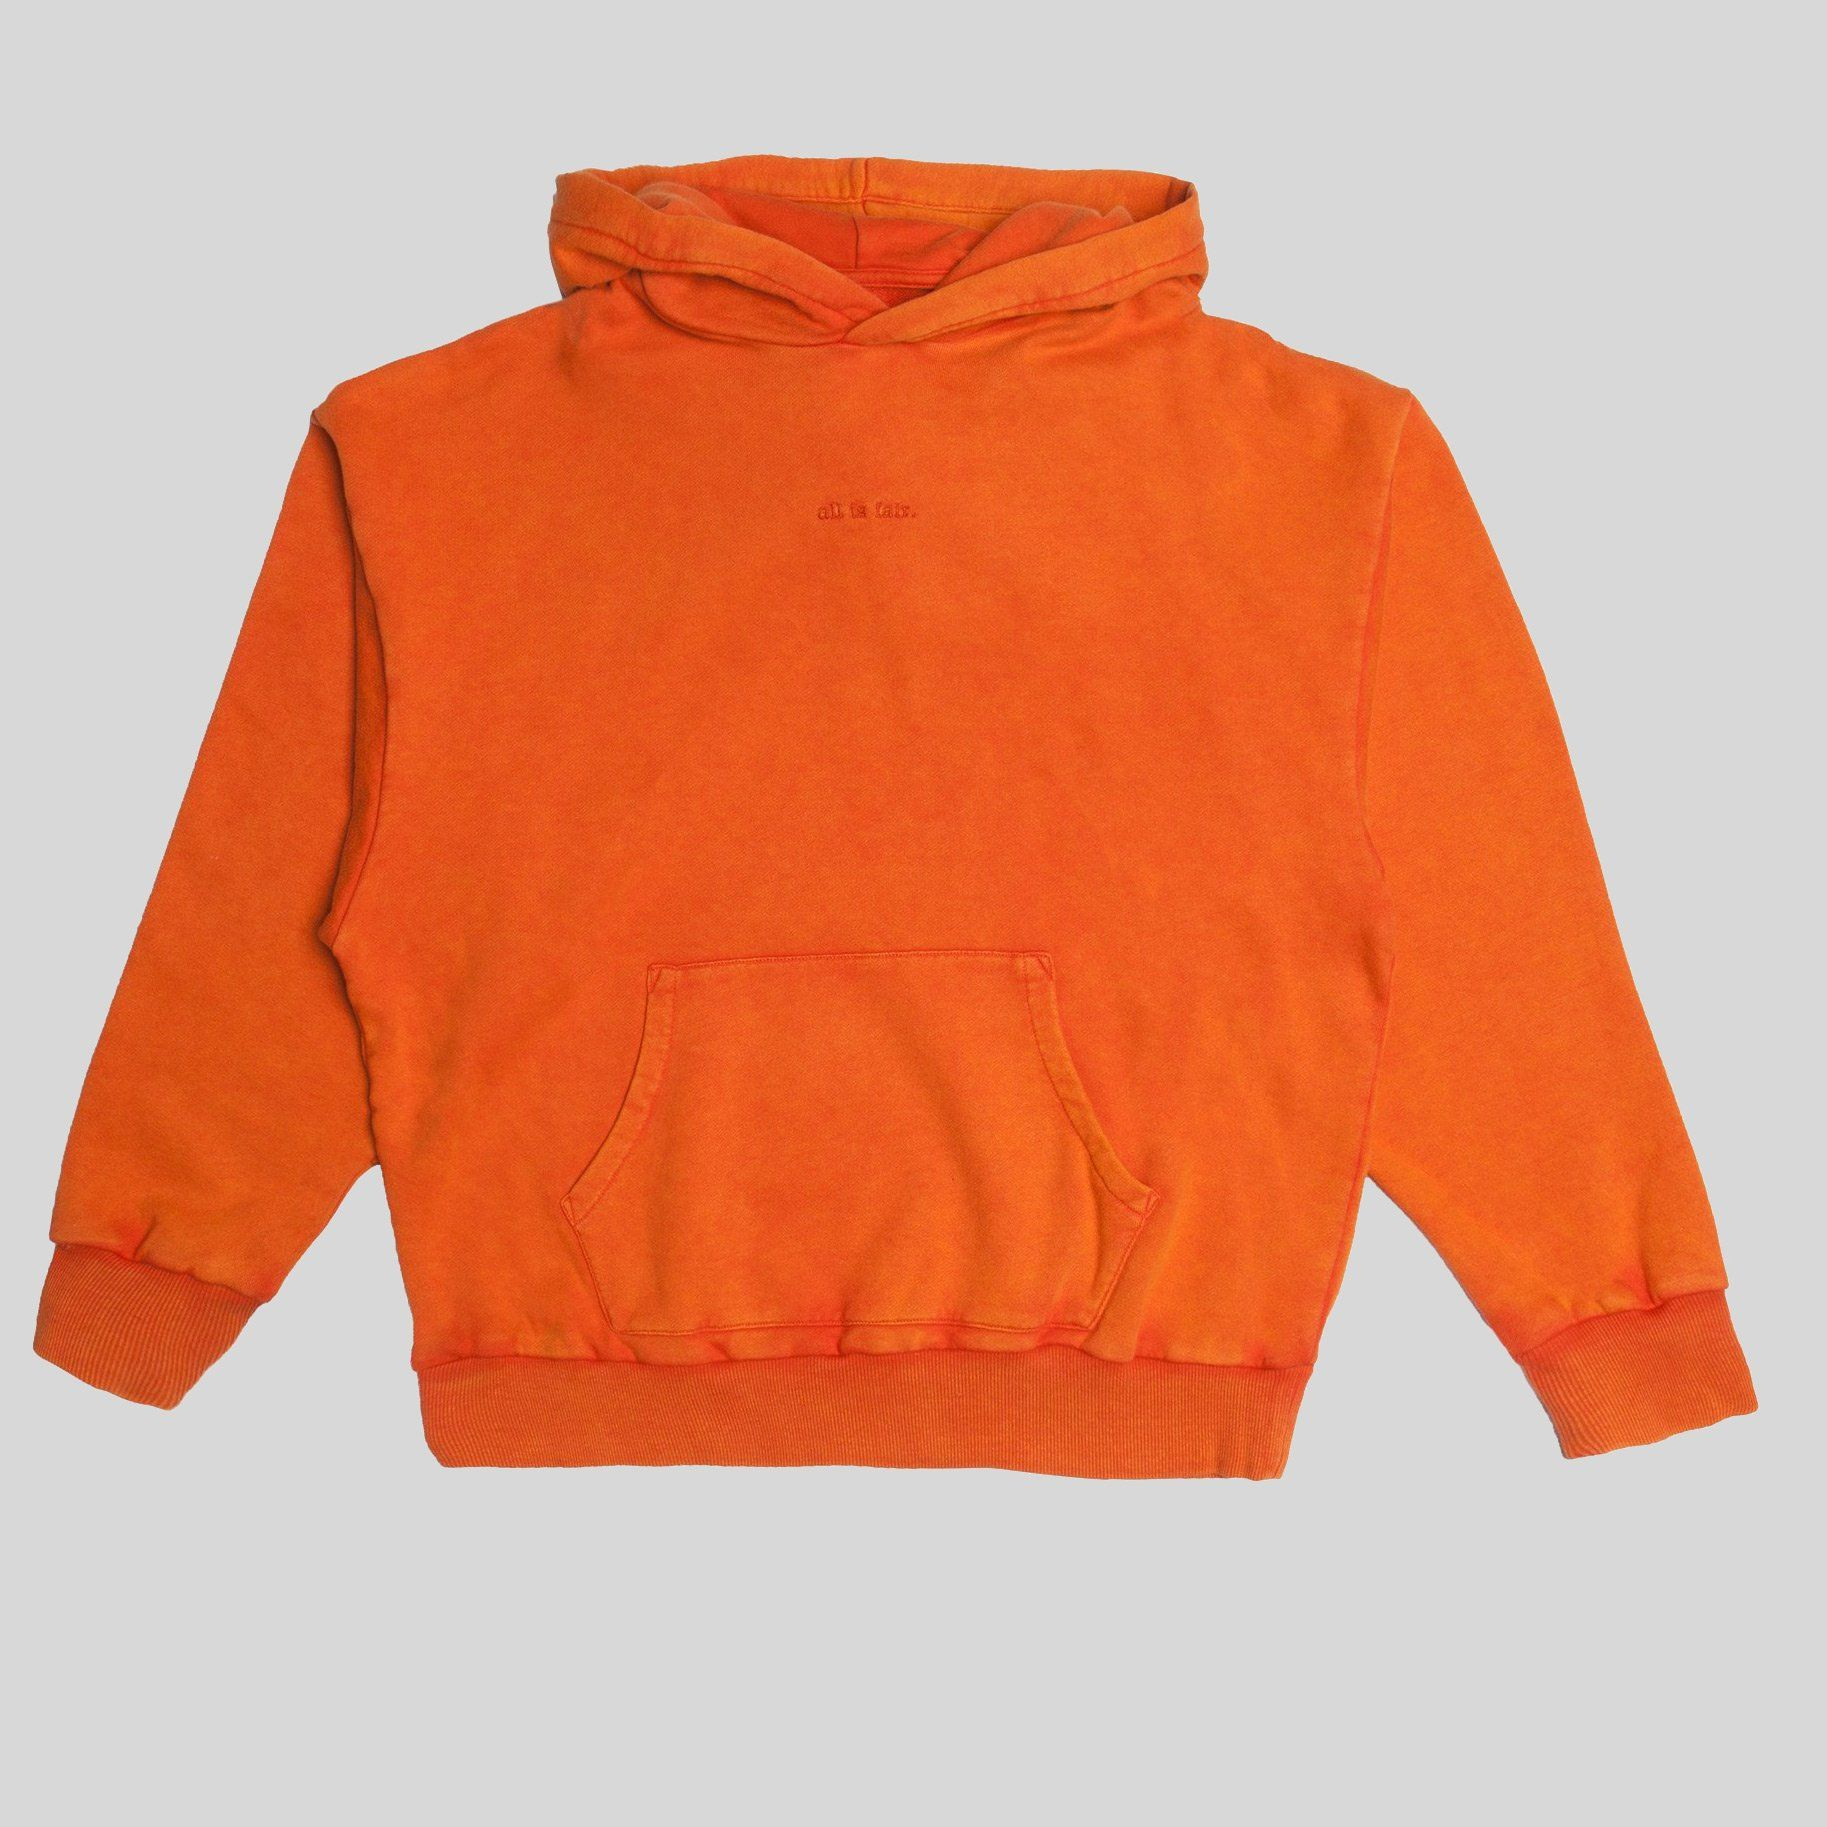 Fairplay Howell Hooded Pullover Orange Hooded pullover